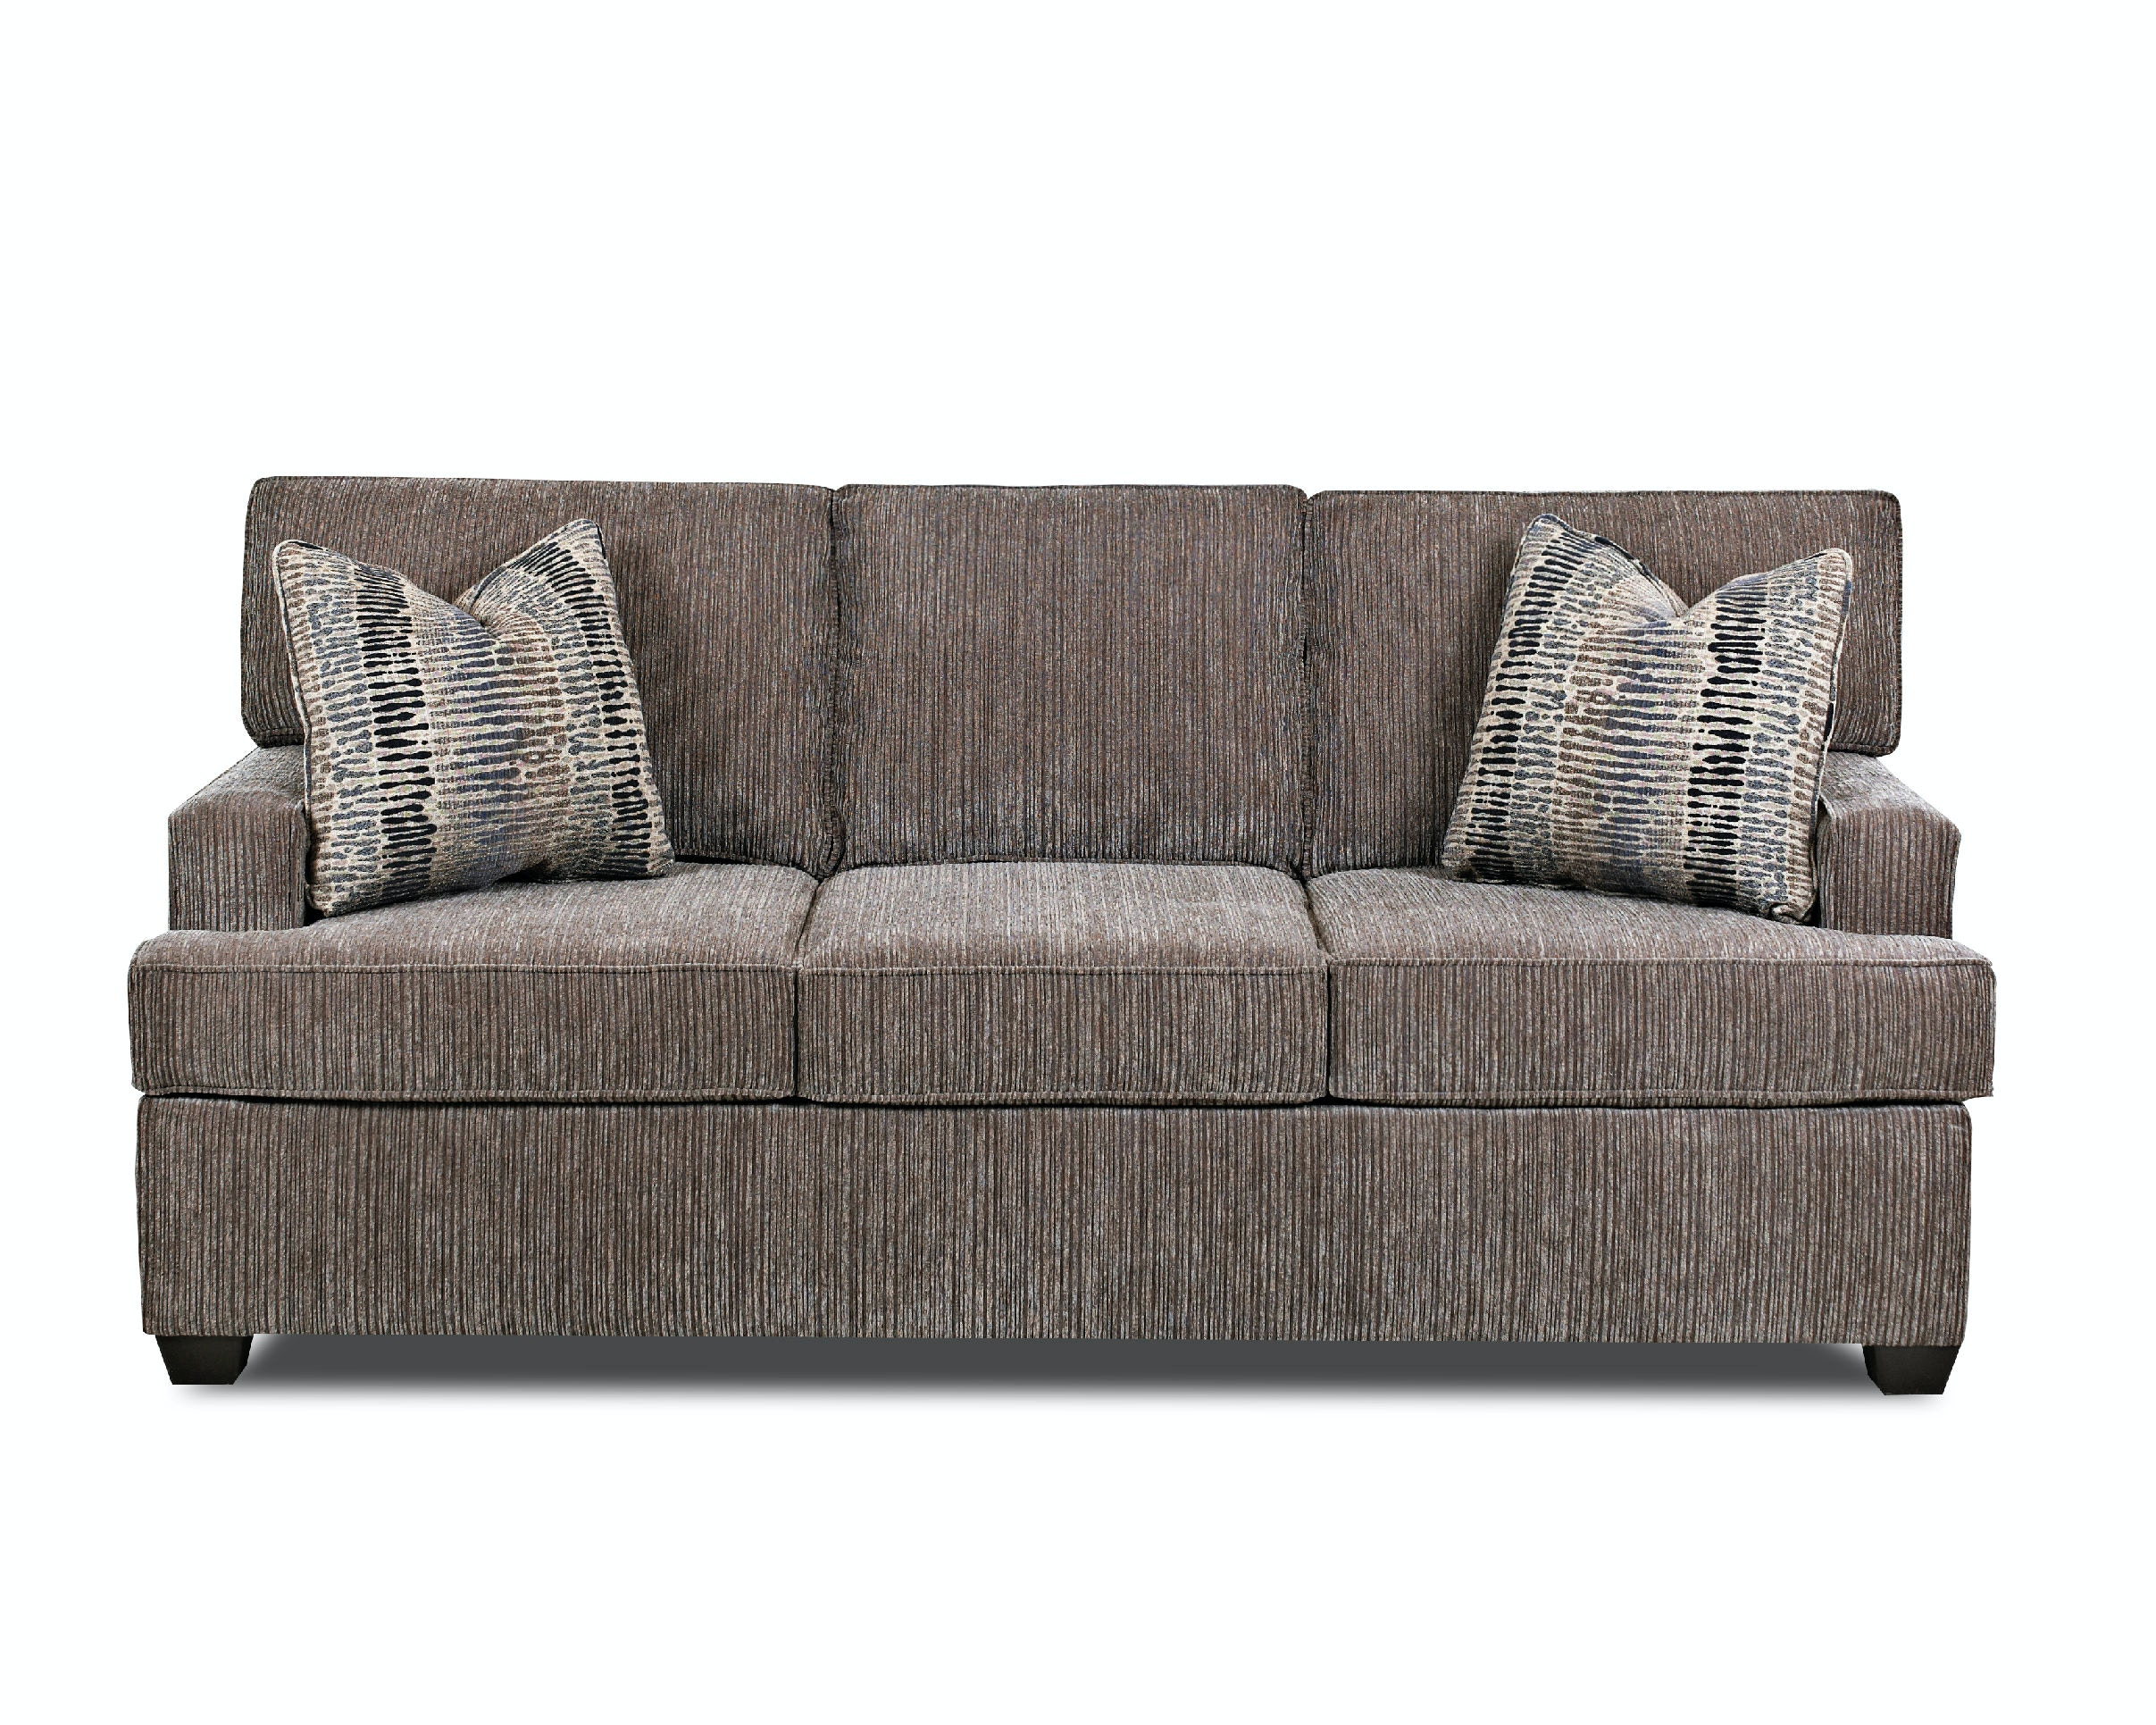 Klaussner Living Room Cruze E92820 S - Hanks Fine Furniture - Bentonville, AR, Conway, AR ...